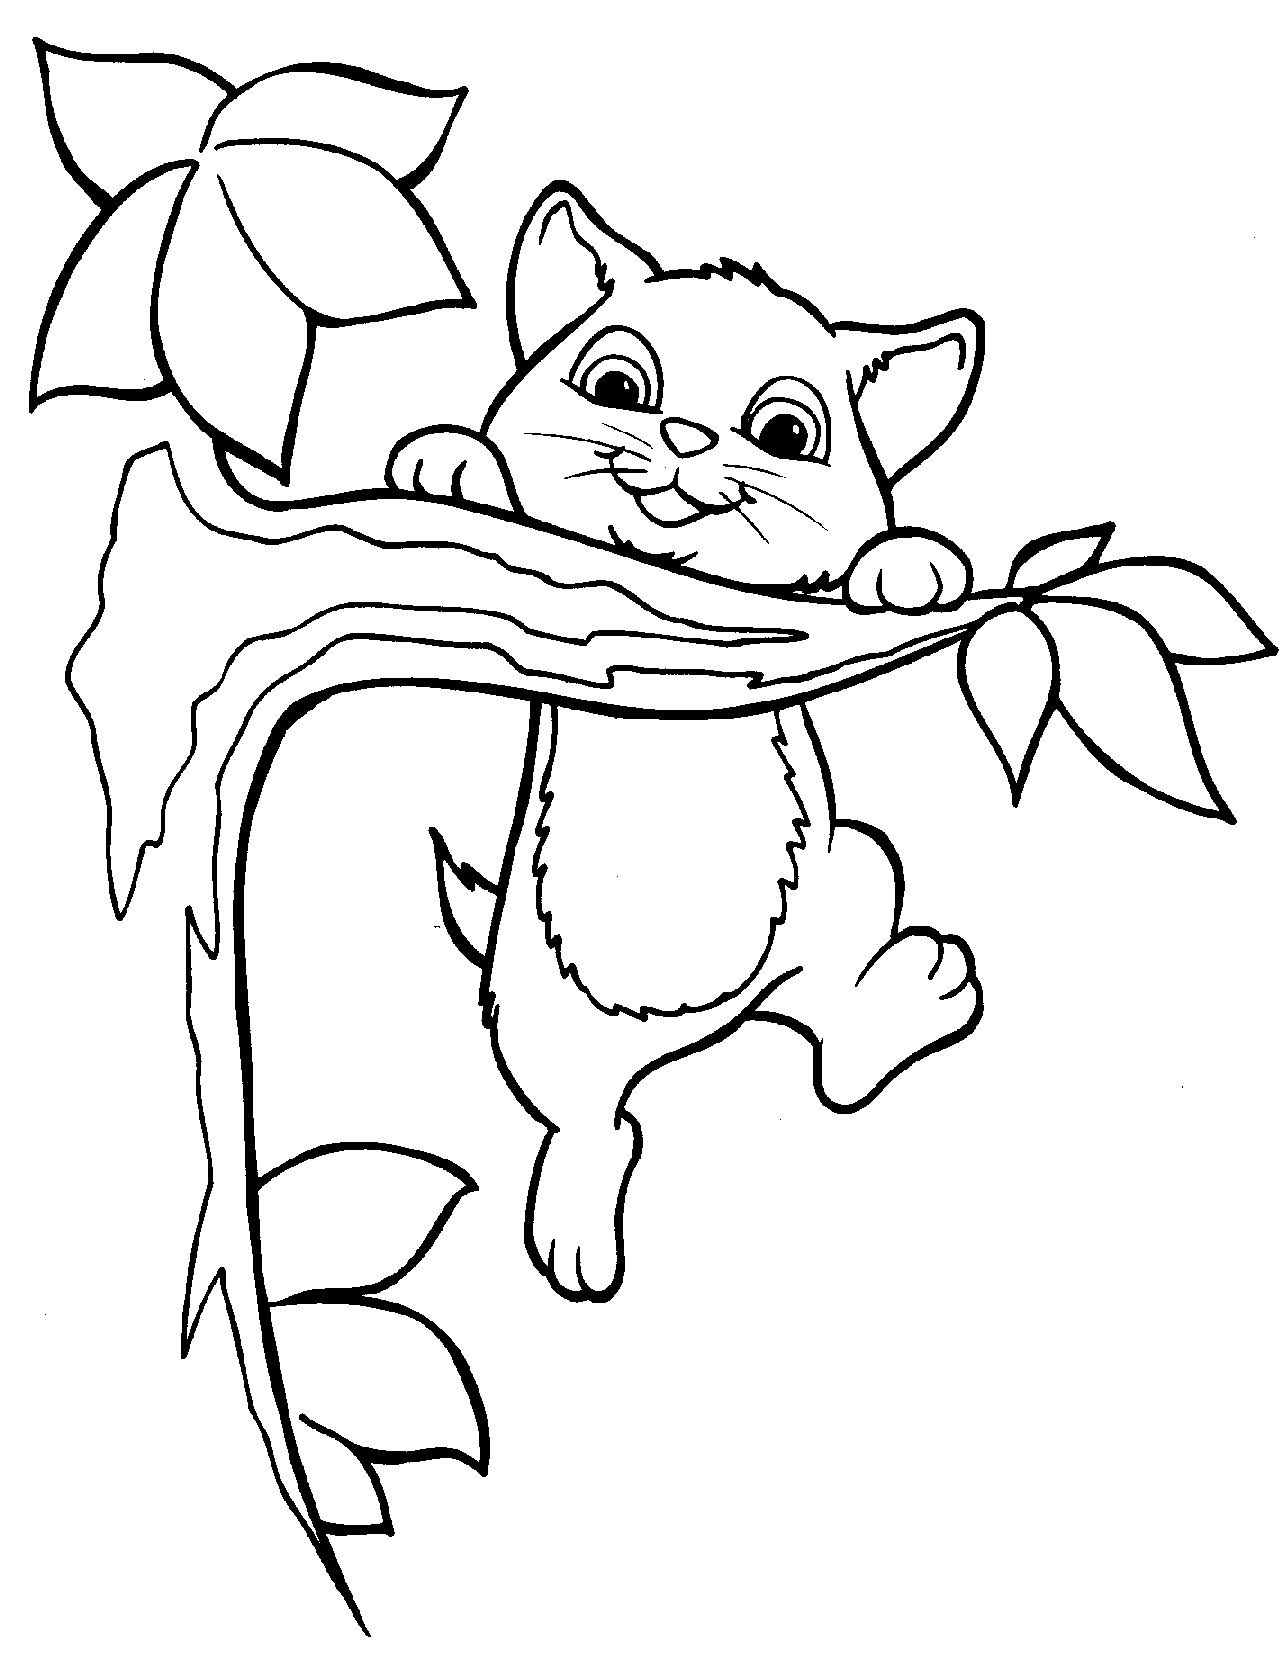 kitten in a tree coloring page for teens and adults libros para